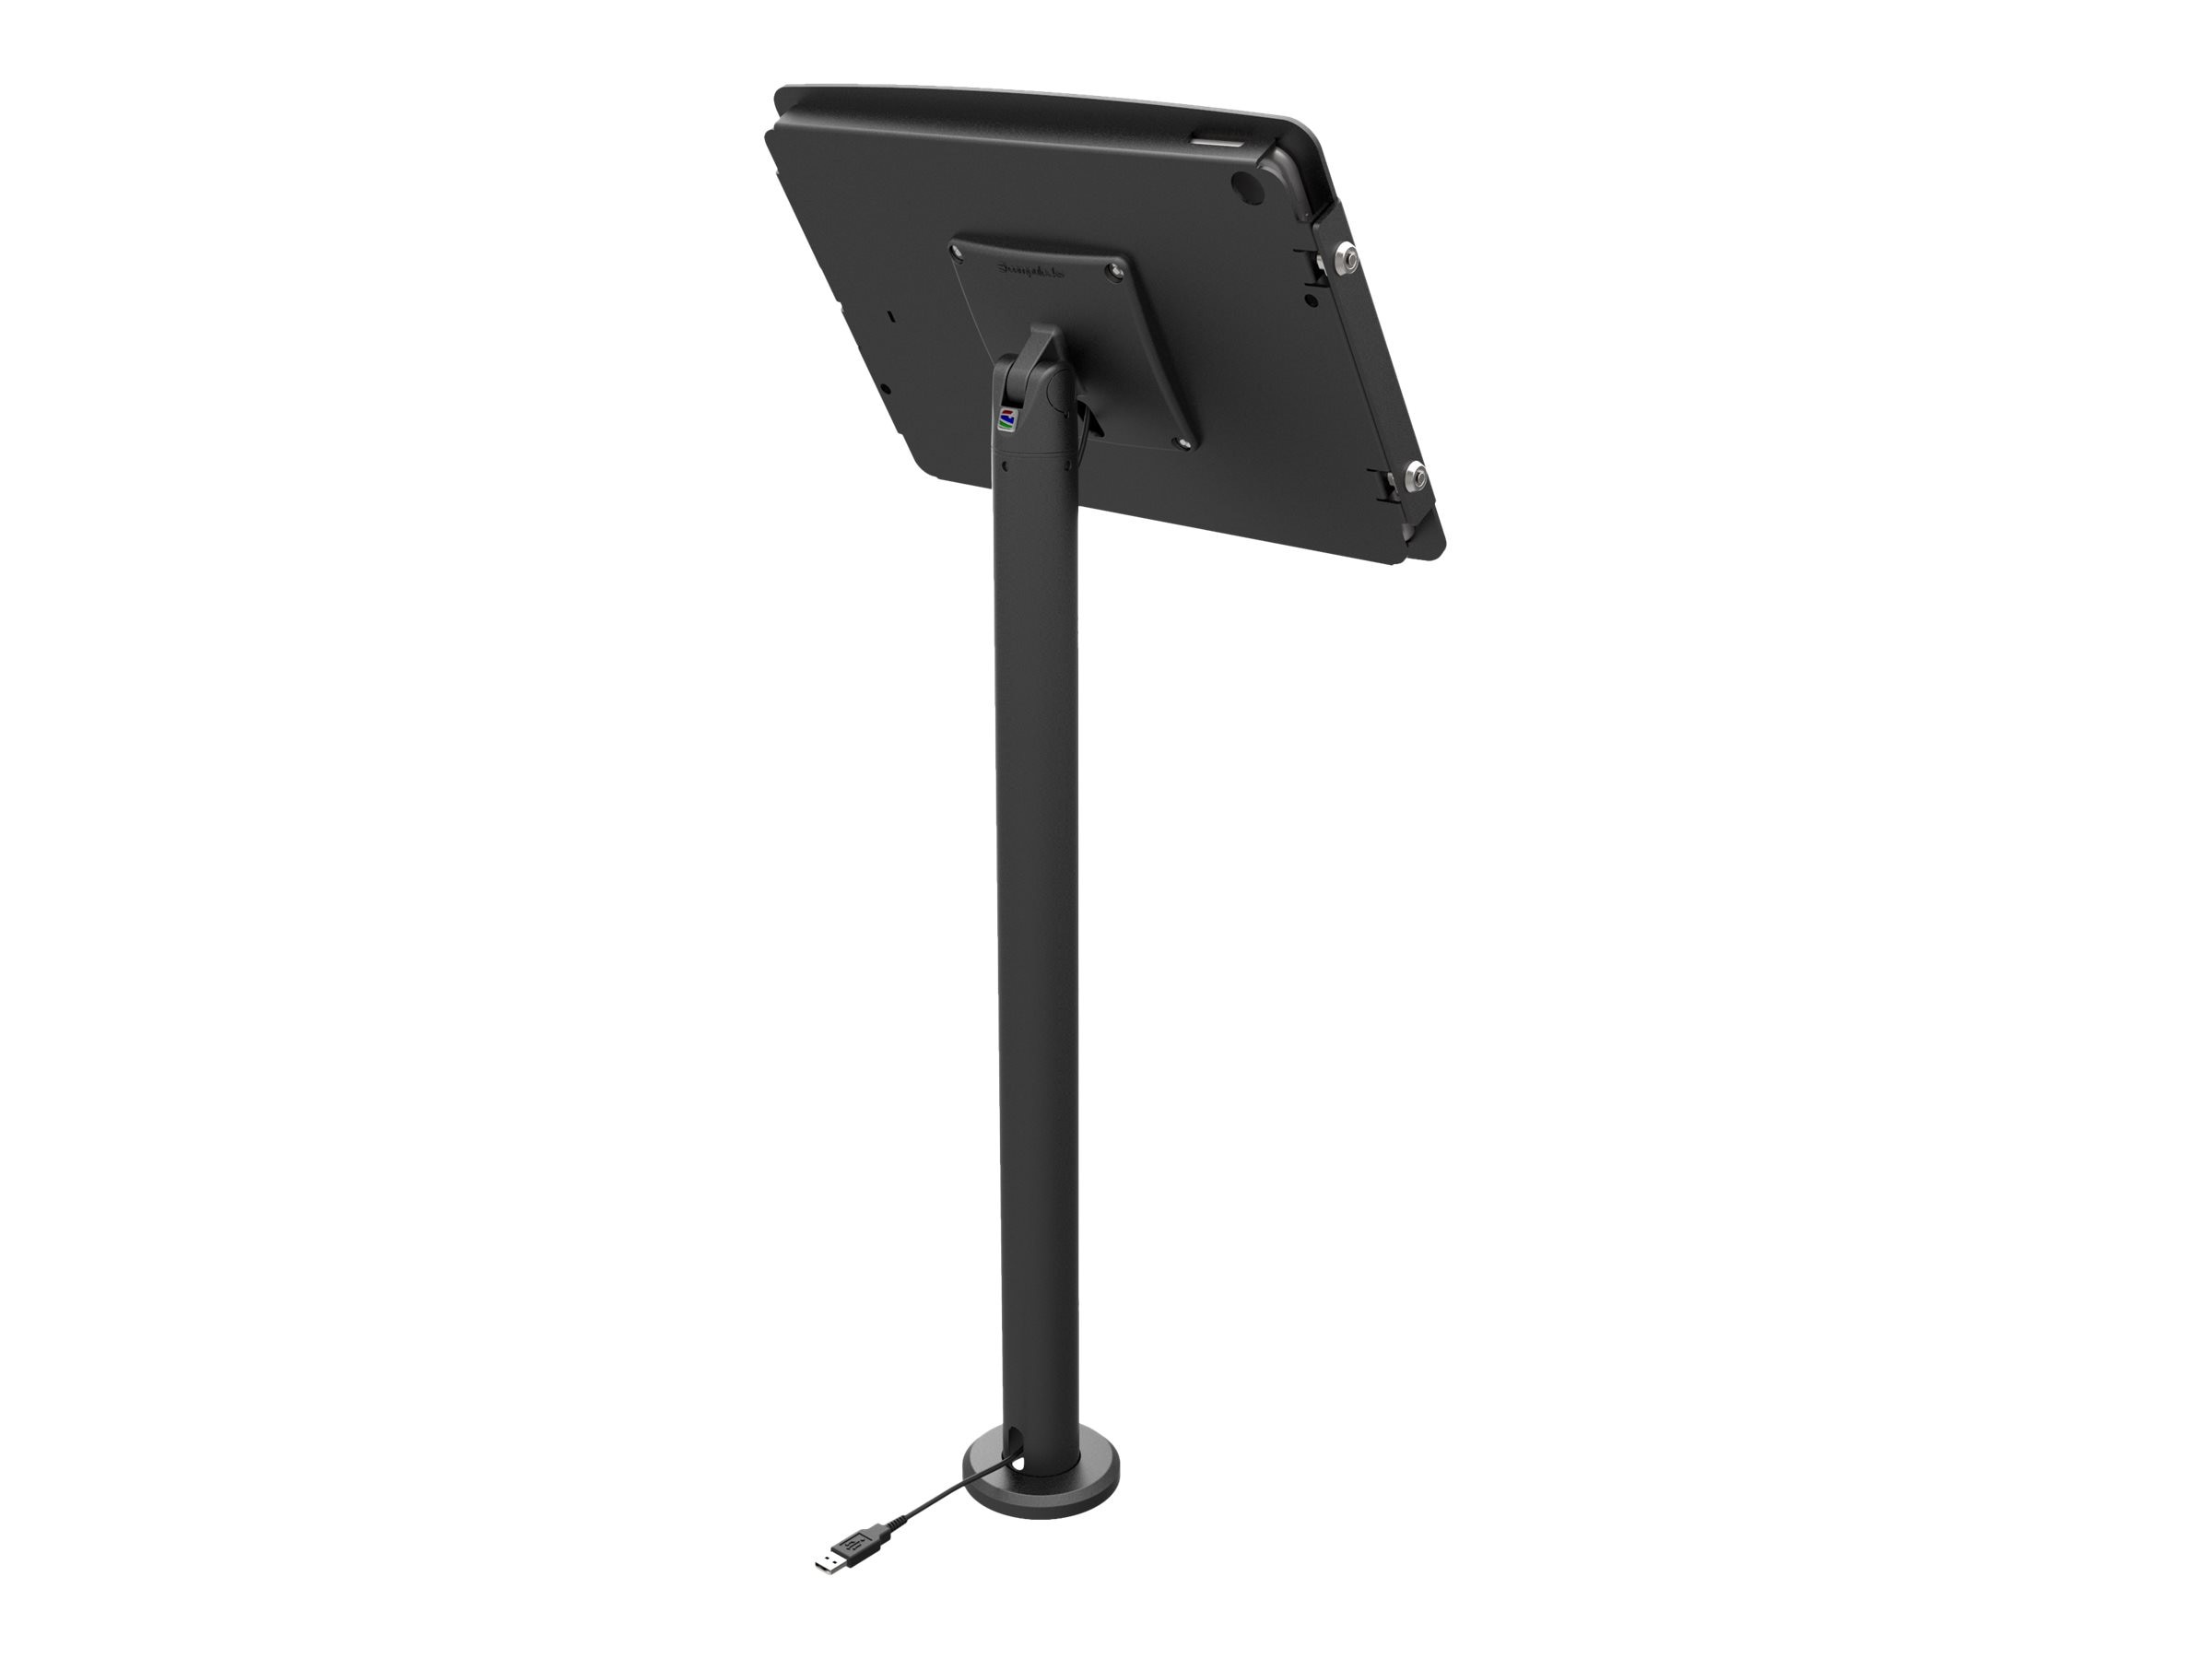 Compulocks Rise for iPad Pro Kiosk Stand 60cm, Black, TCDP03290SENB